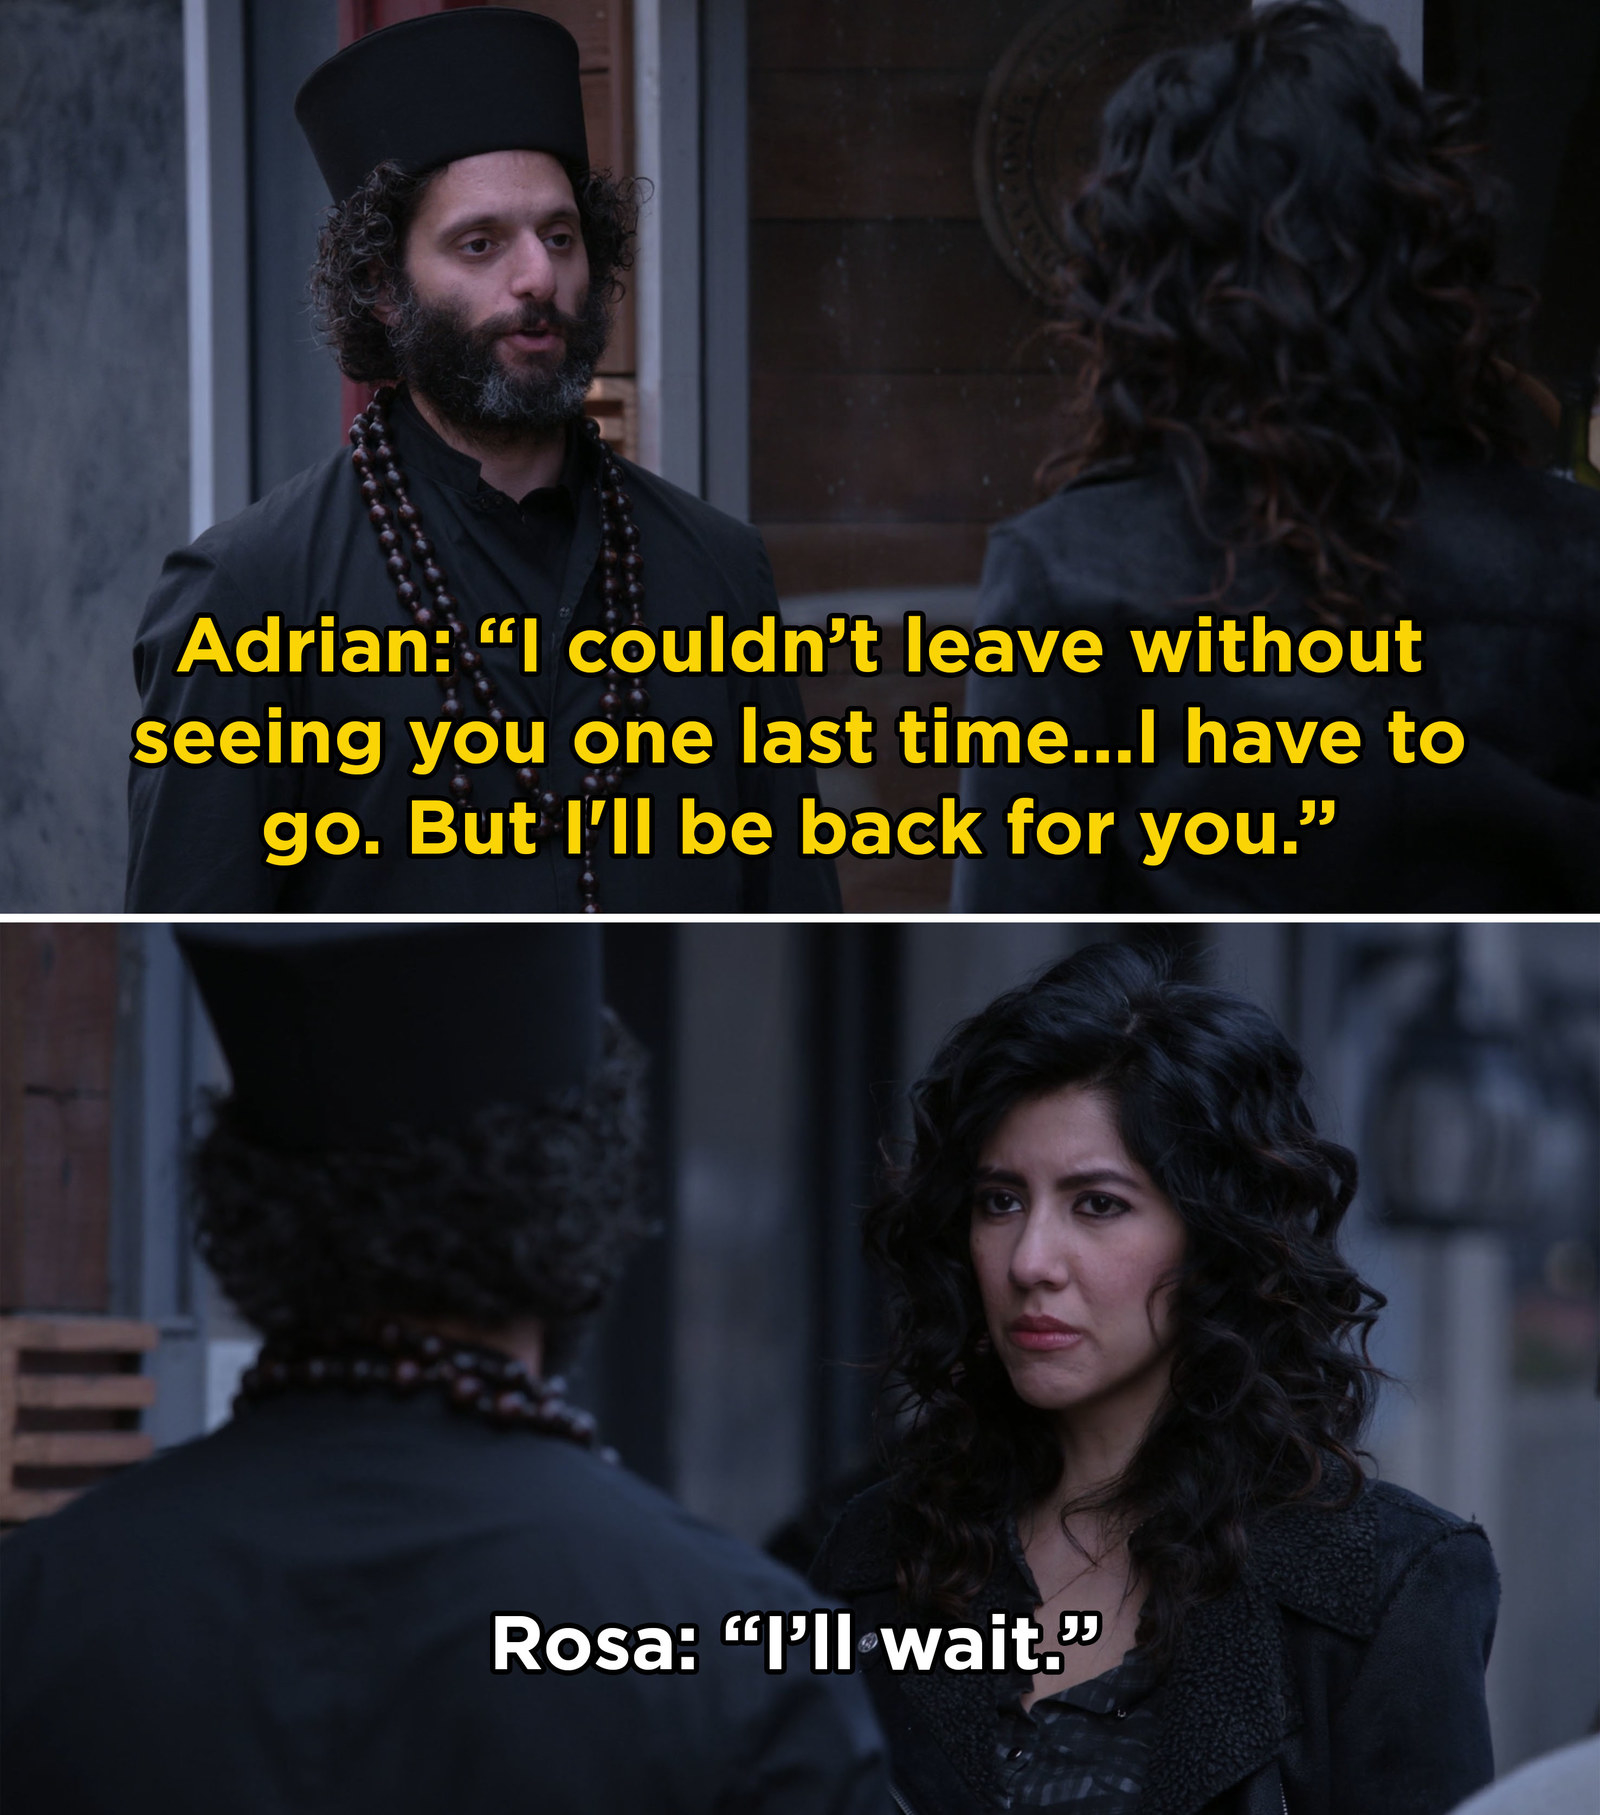 And when Adrian had to go away and bid a heartbreaking farewell to Rosa